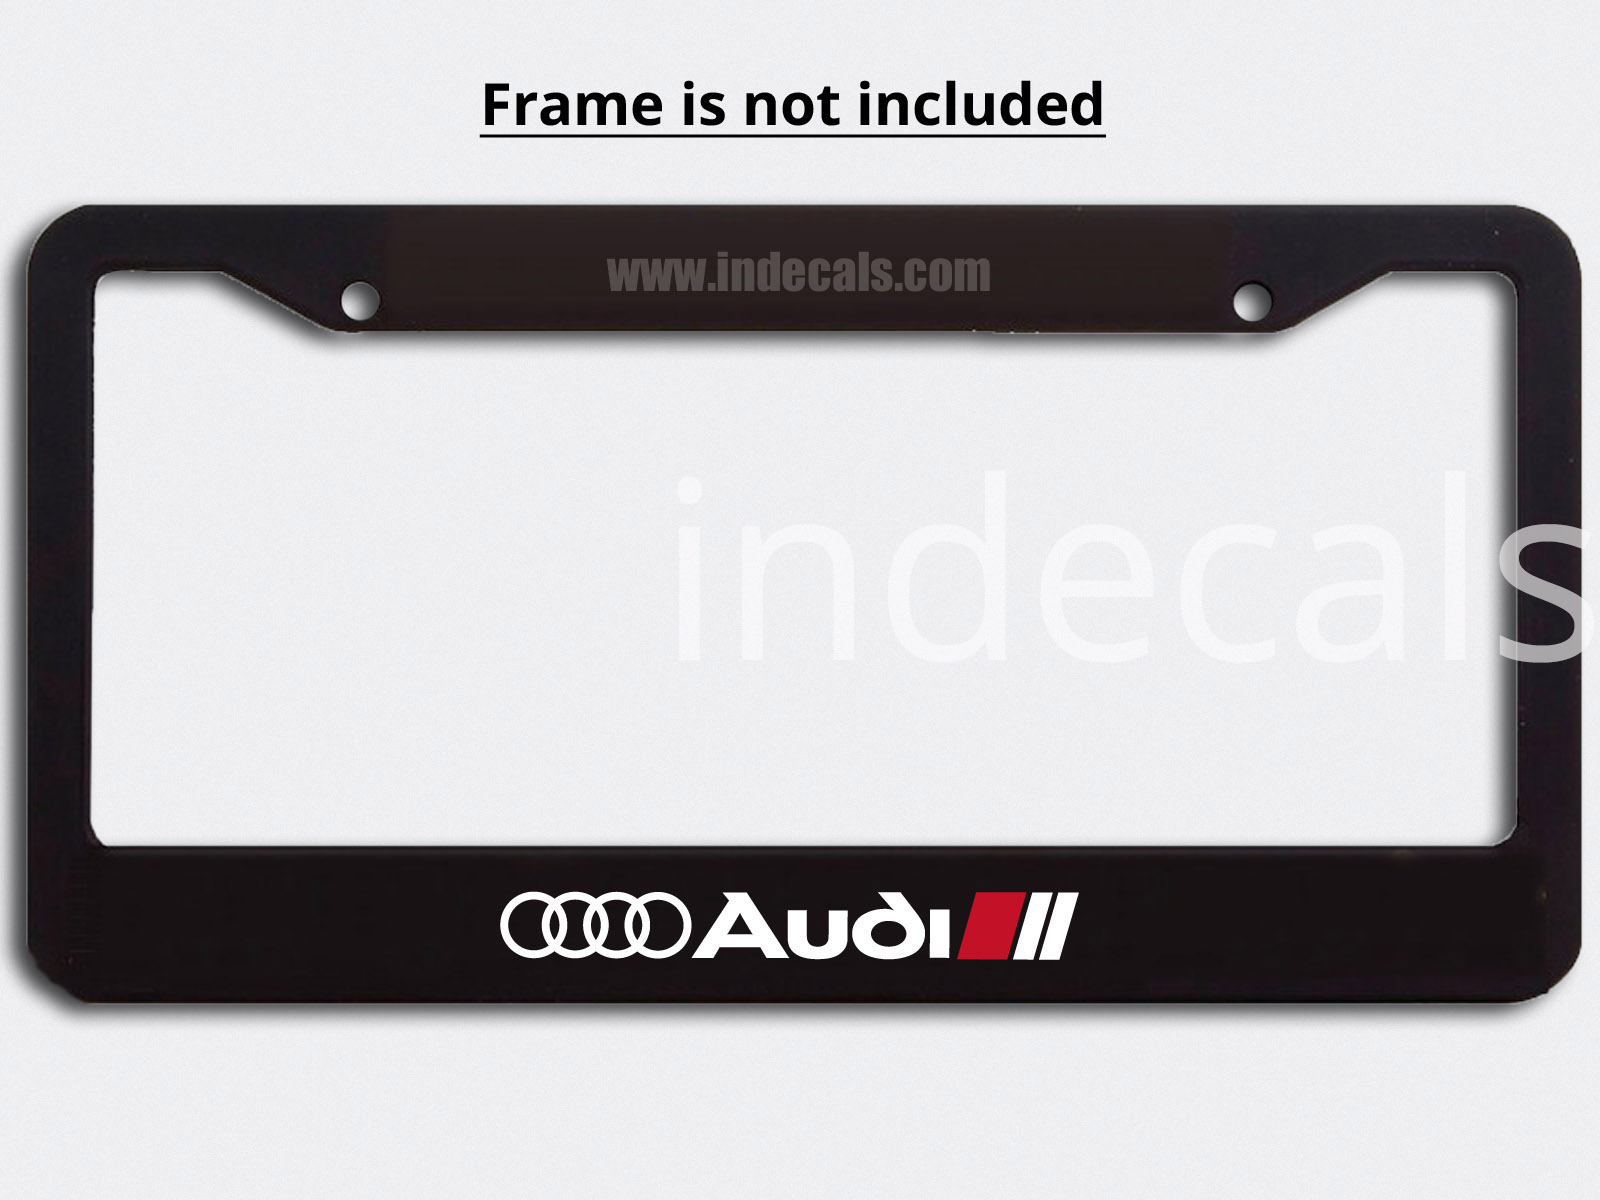 3 x Audi Stickers for Plate Frame - White